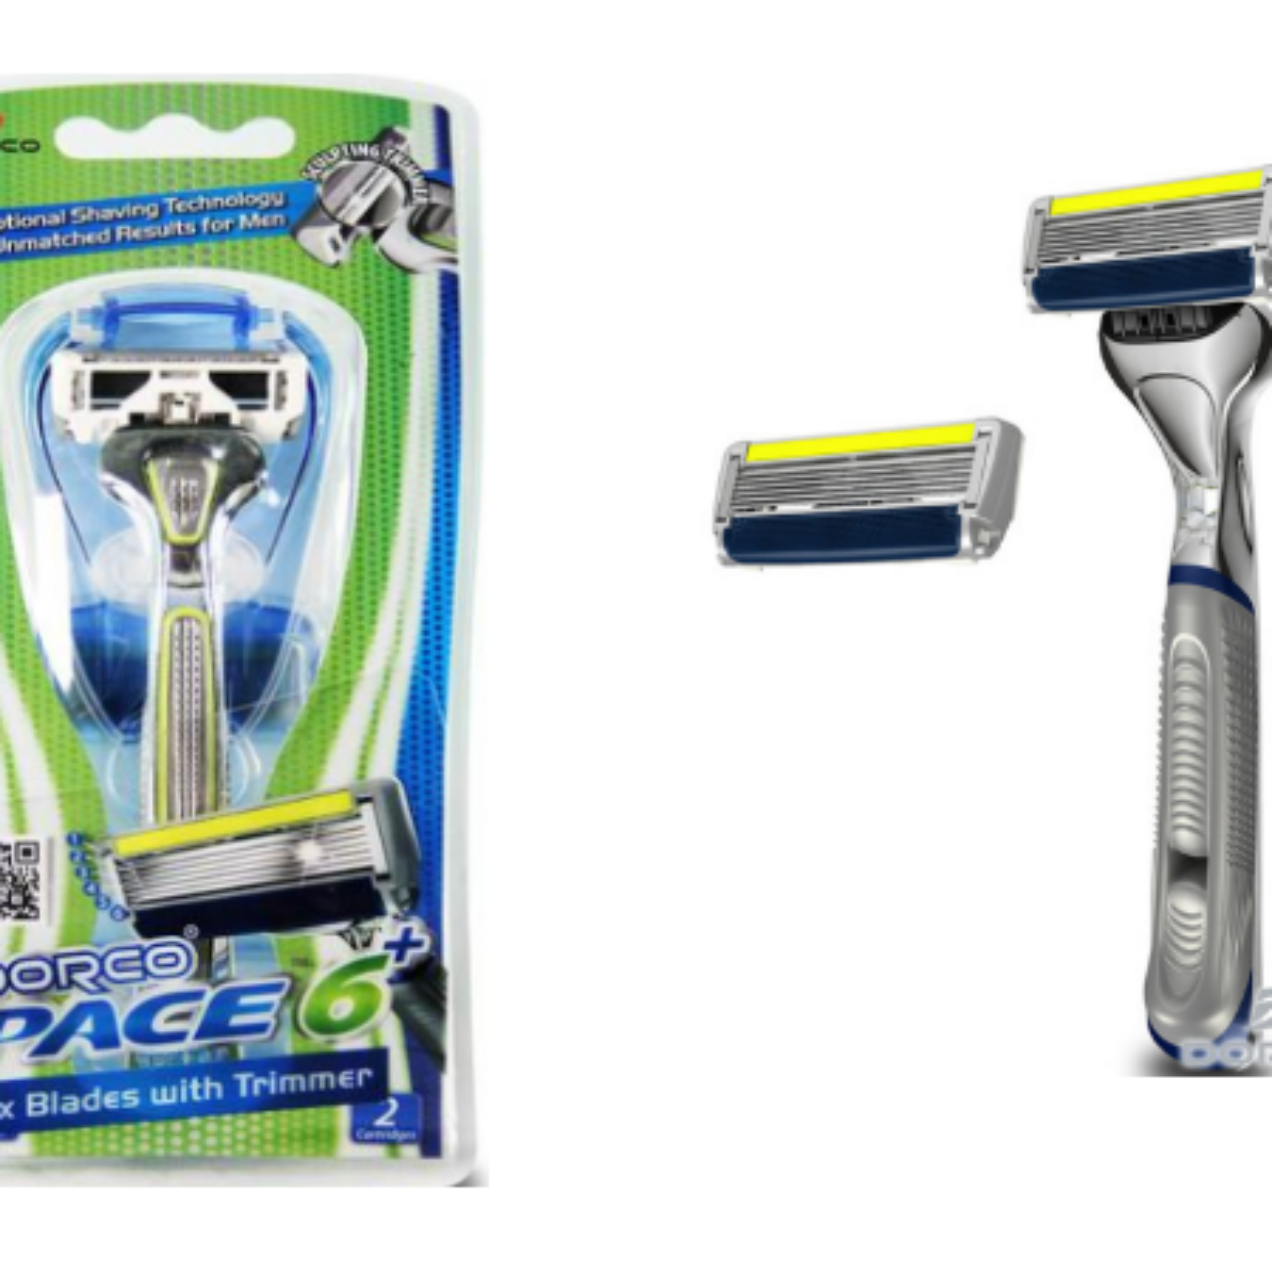 Pace 6 Plus Razor System Only $1.99 (Regular $6.50) – Contains 1 Handle and 2 Cartridges!